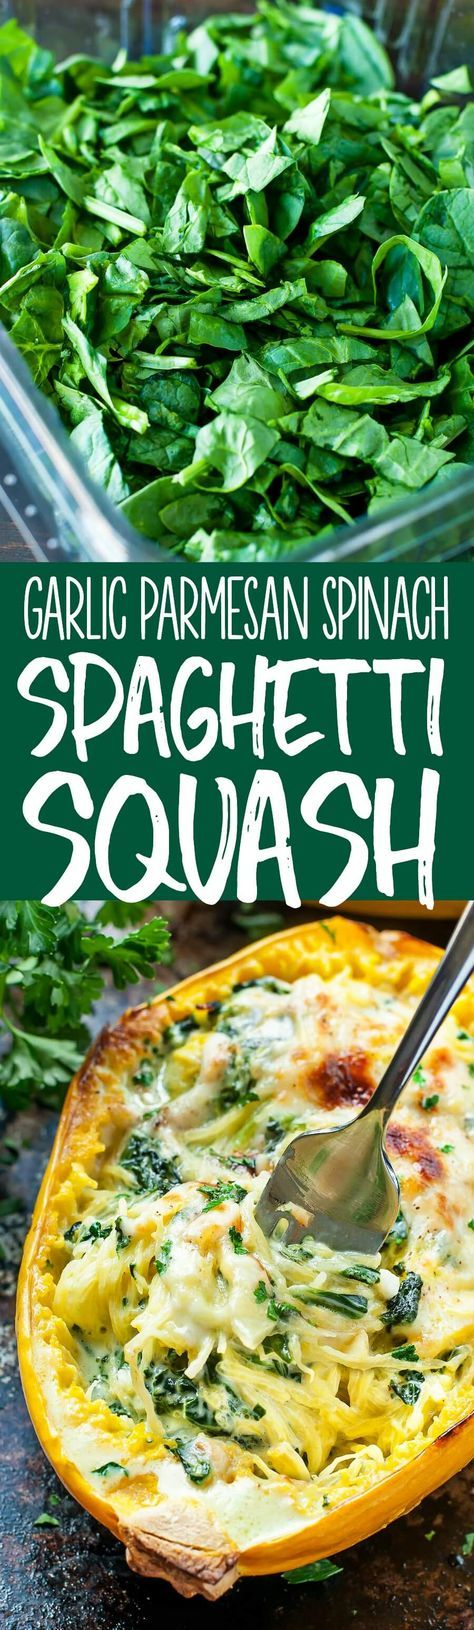 Aiming to eat more veggies? This Cheesy Garlic Parmesan Spinach Spaghetti Squash recipe packs an entire package of spinach swirled with an easy cheesy cream sauce. (Squash Recipes)